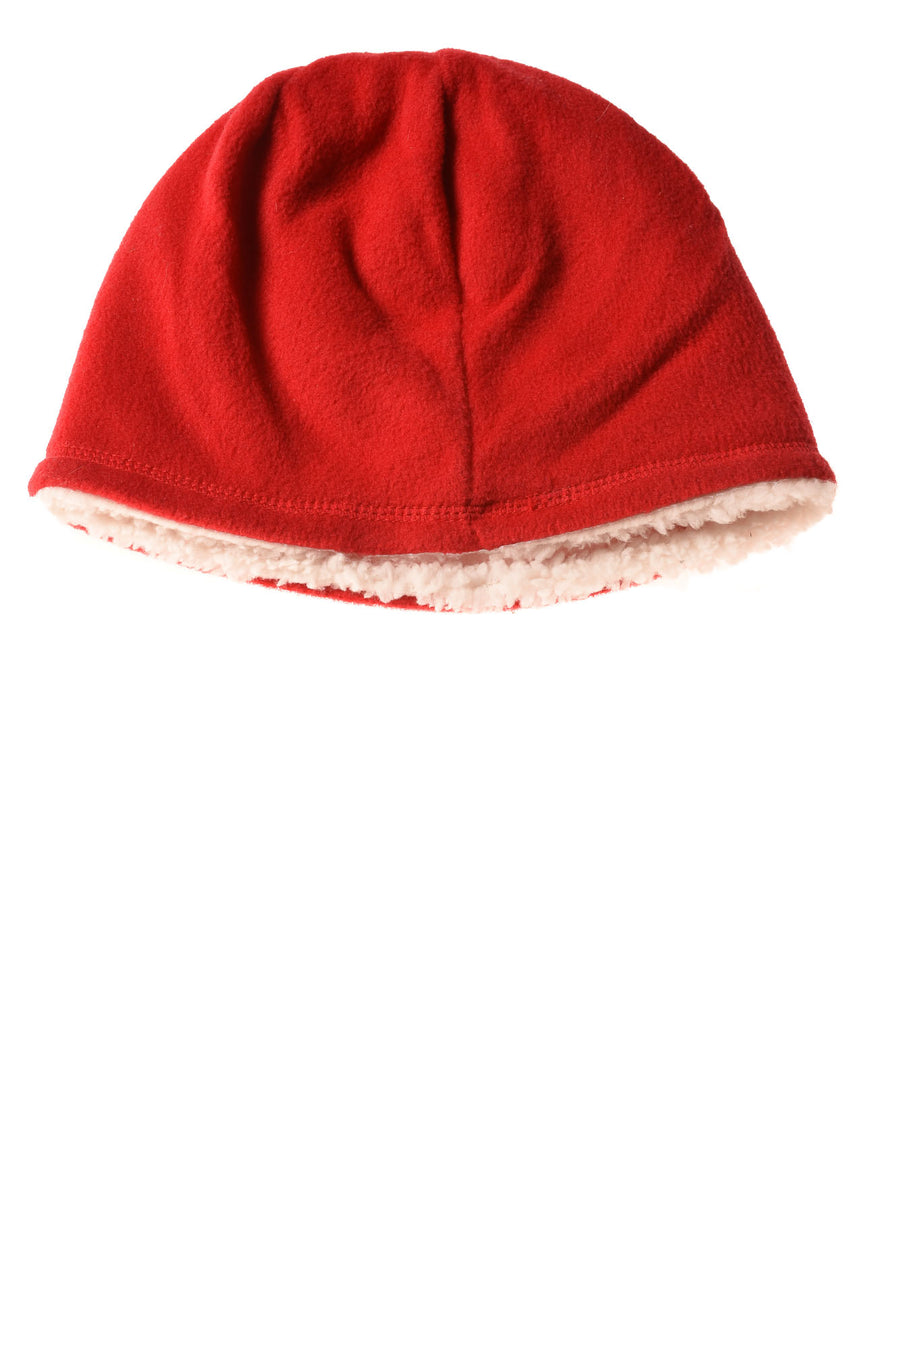 NEW No Brand Women's Hat One Size Red